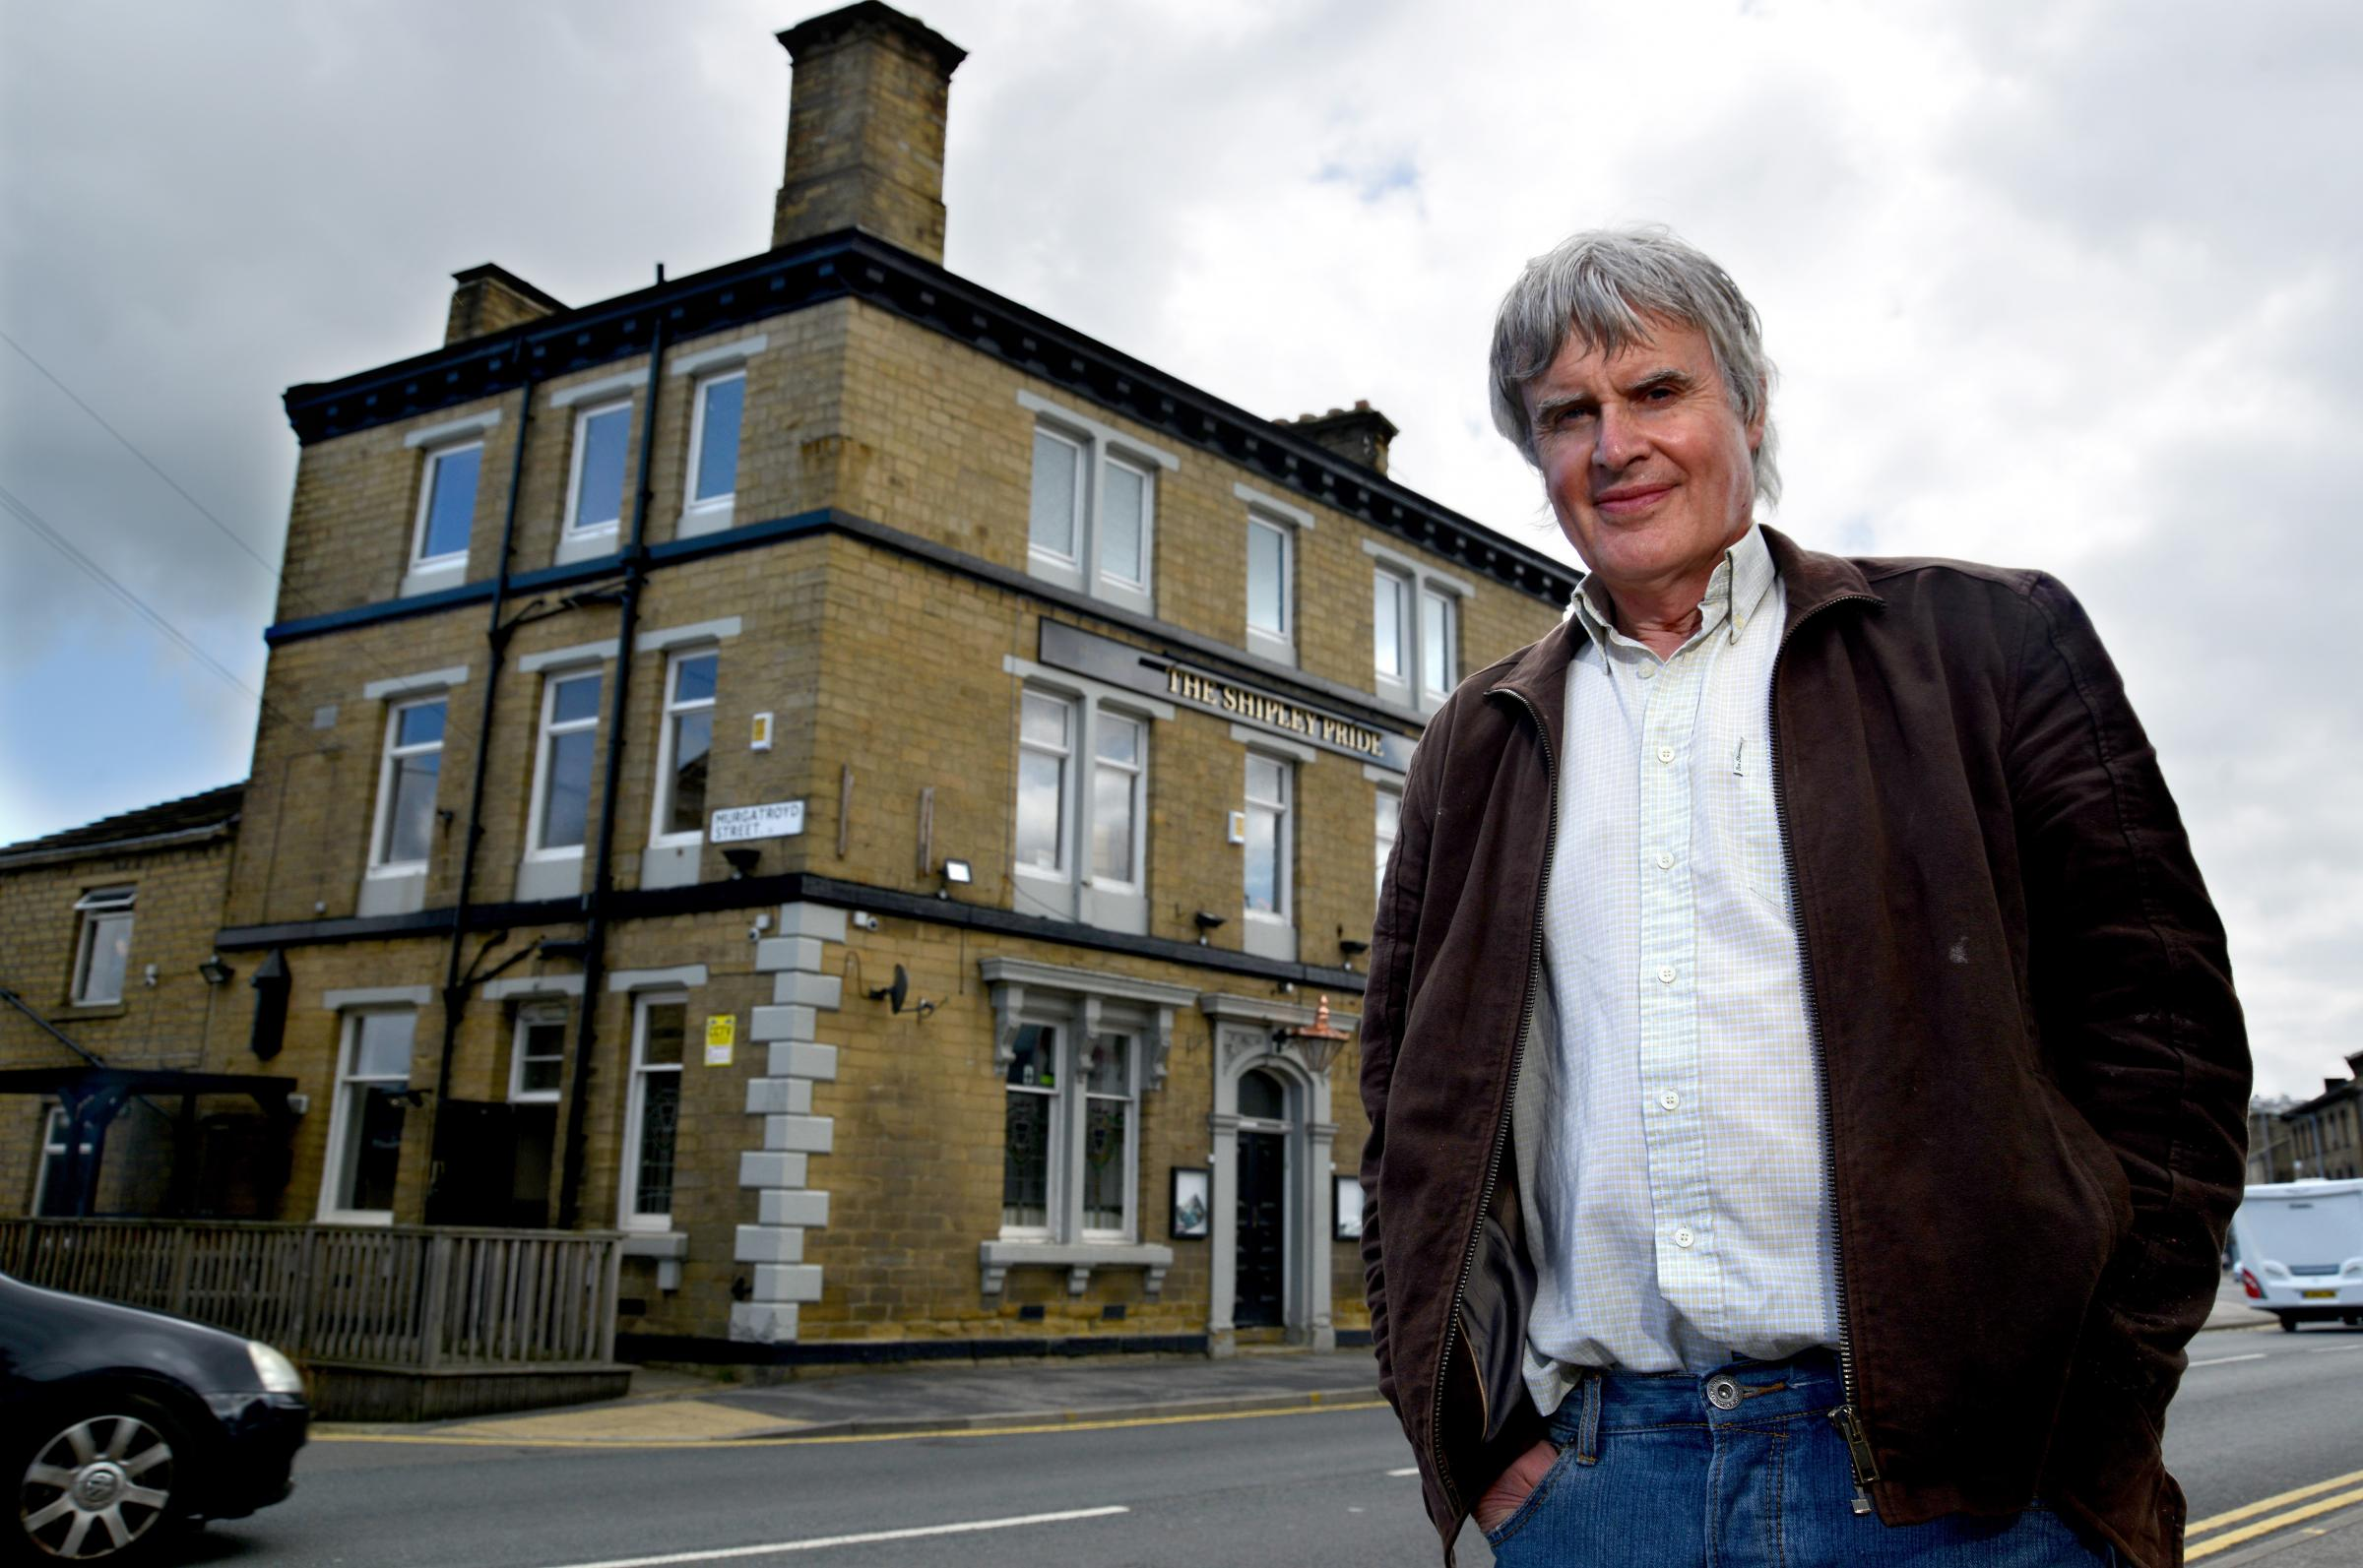 William Wagstaff, owner of numerous Bradford pubs including the Shipley Pride, which he is refurbishing ahead of its anticipated opening in Autumn